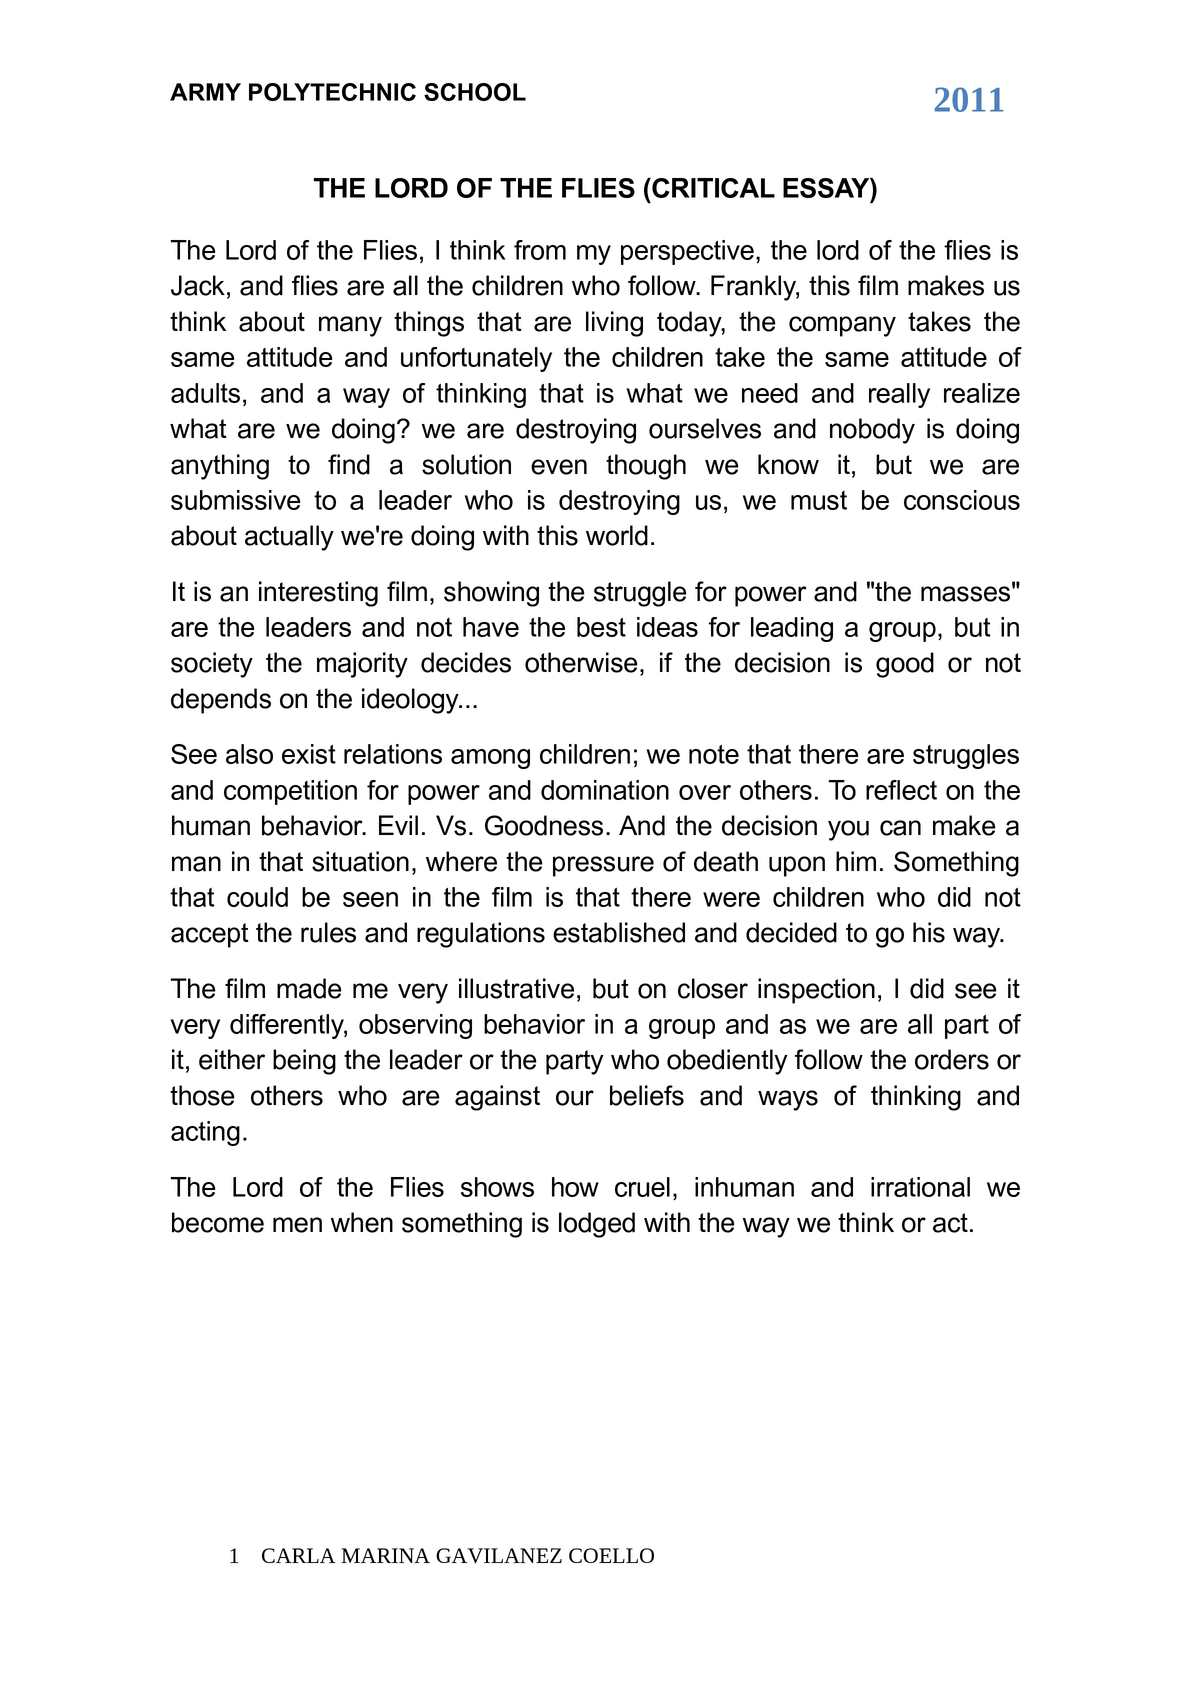 lord of the flies power essay calamatilde131acirccopyo the lord of the flies critical essay